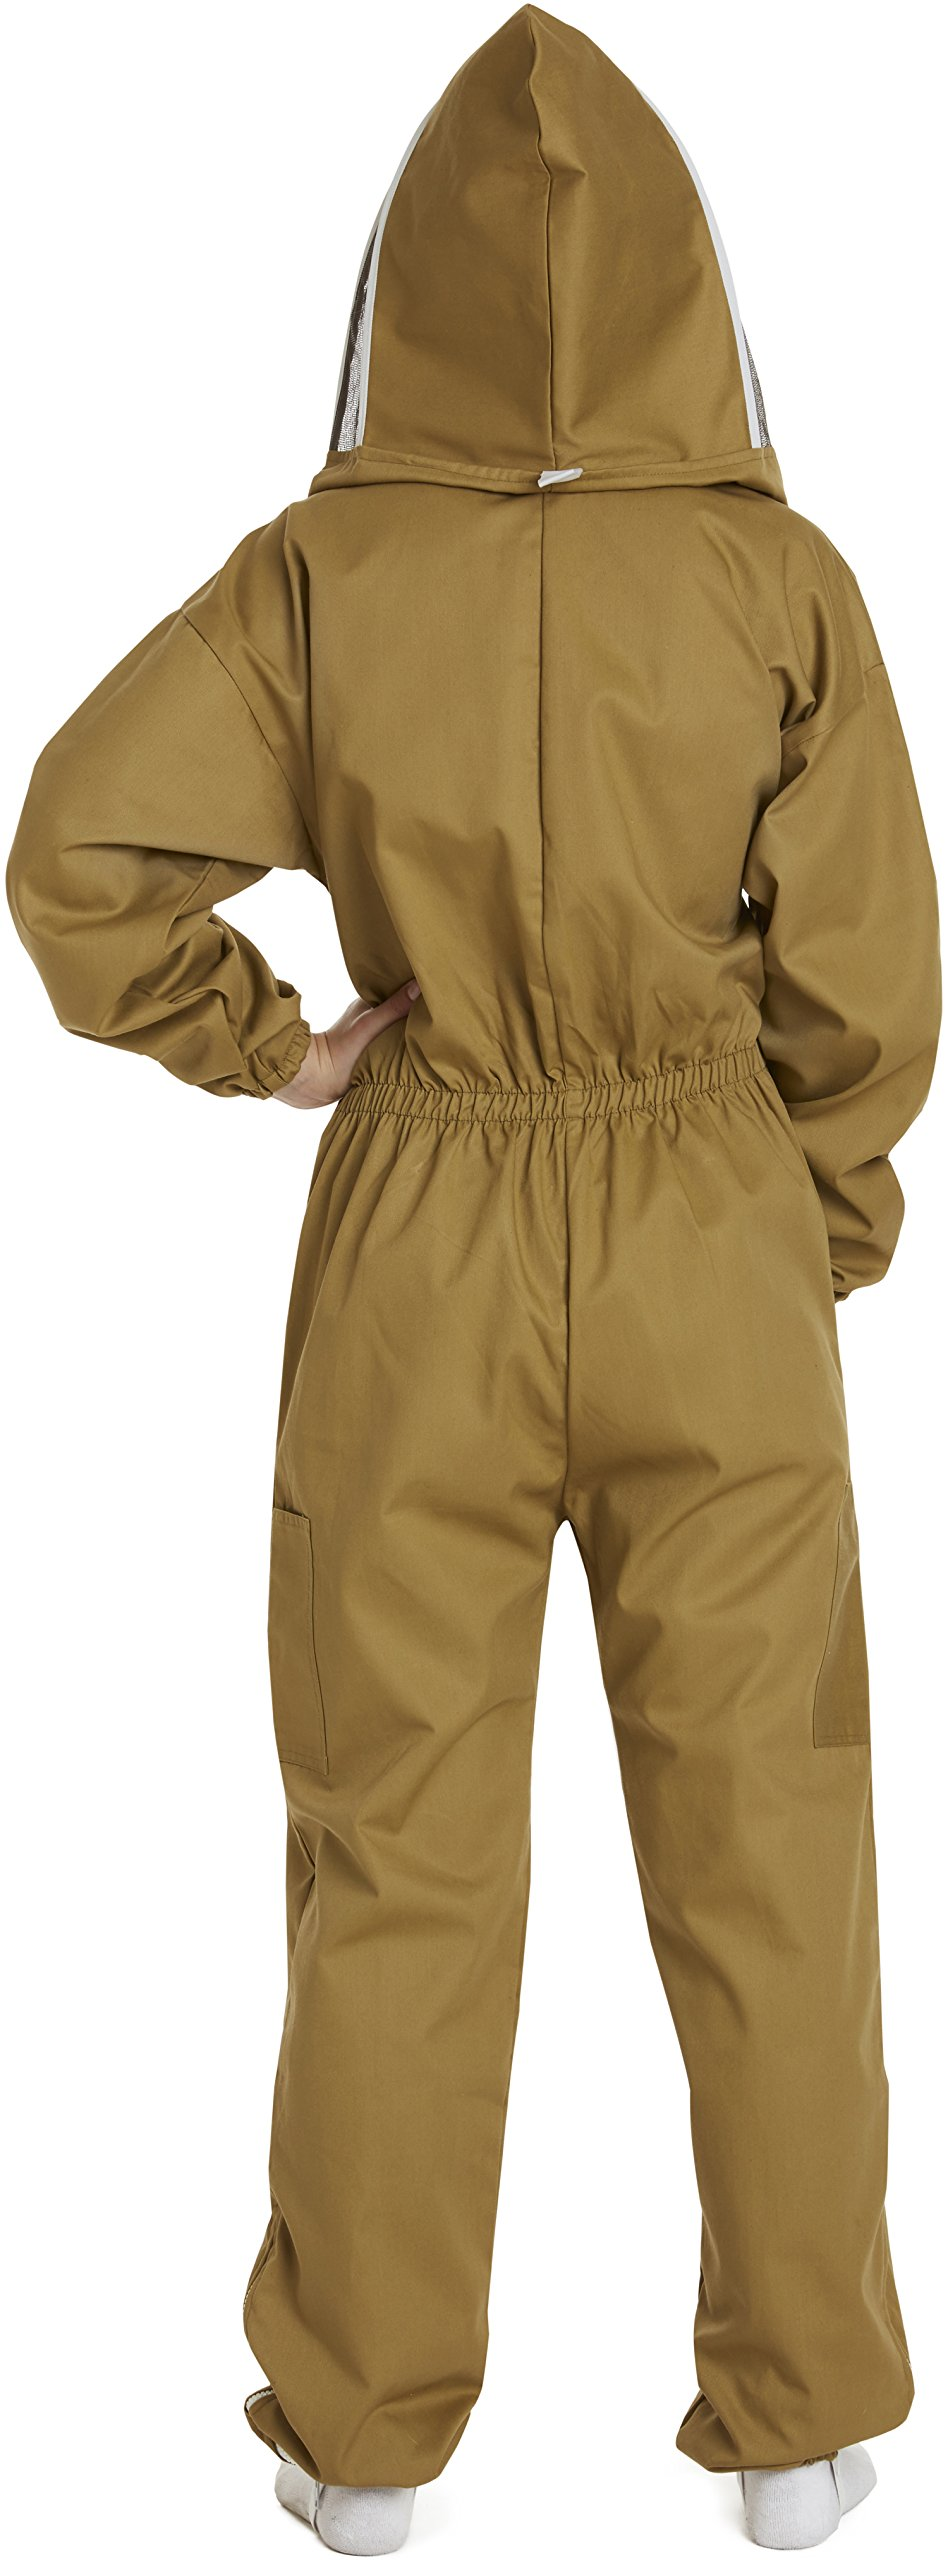 NATURAL APIARY - Apiarist Beekeeping Suit - Khaki - (All-in-One) - Fencing Veil - Total Protection for Professional & Beginner Beekeepers - X Large by Natural Apiary (Image #3)